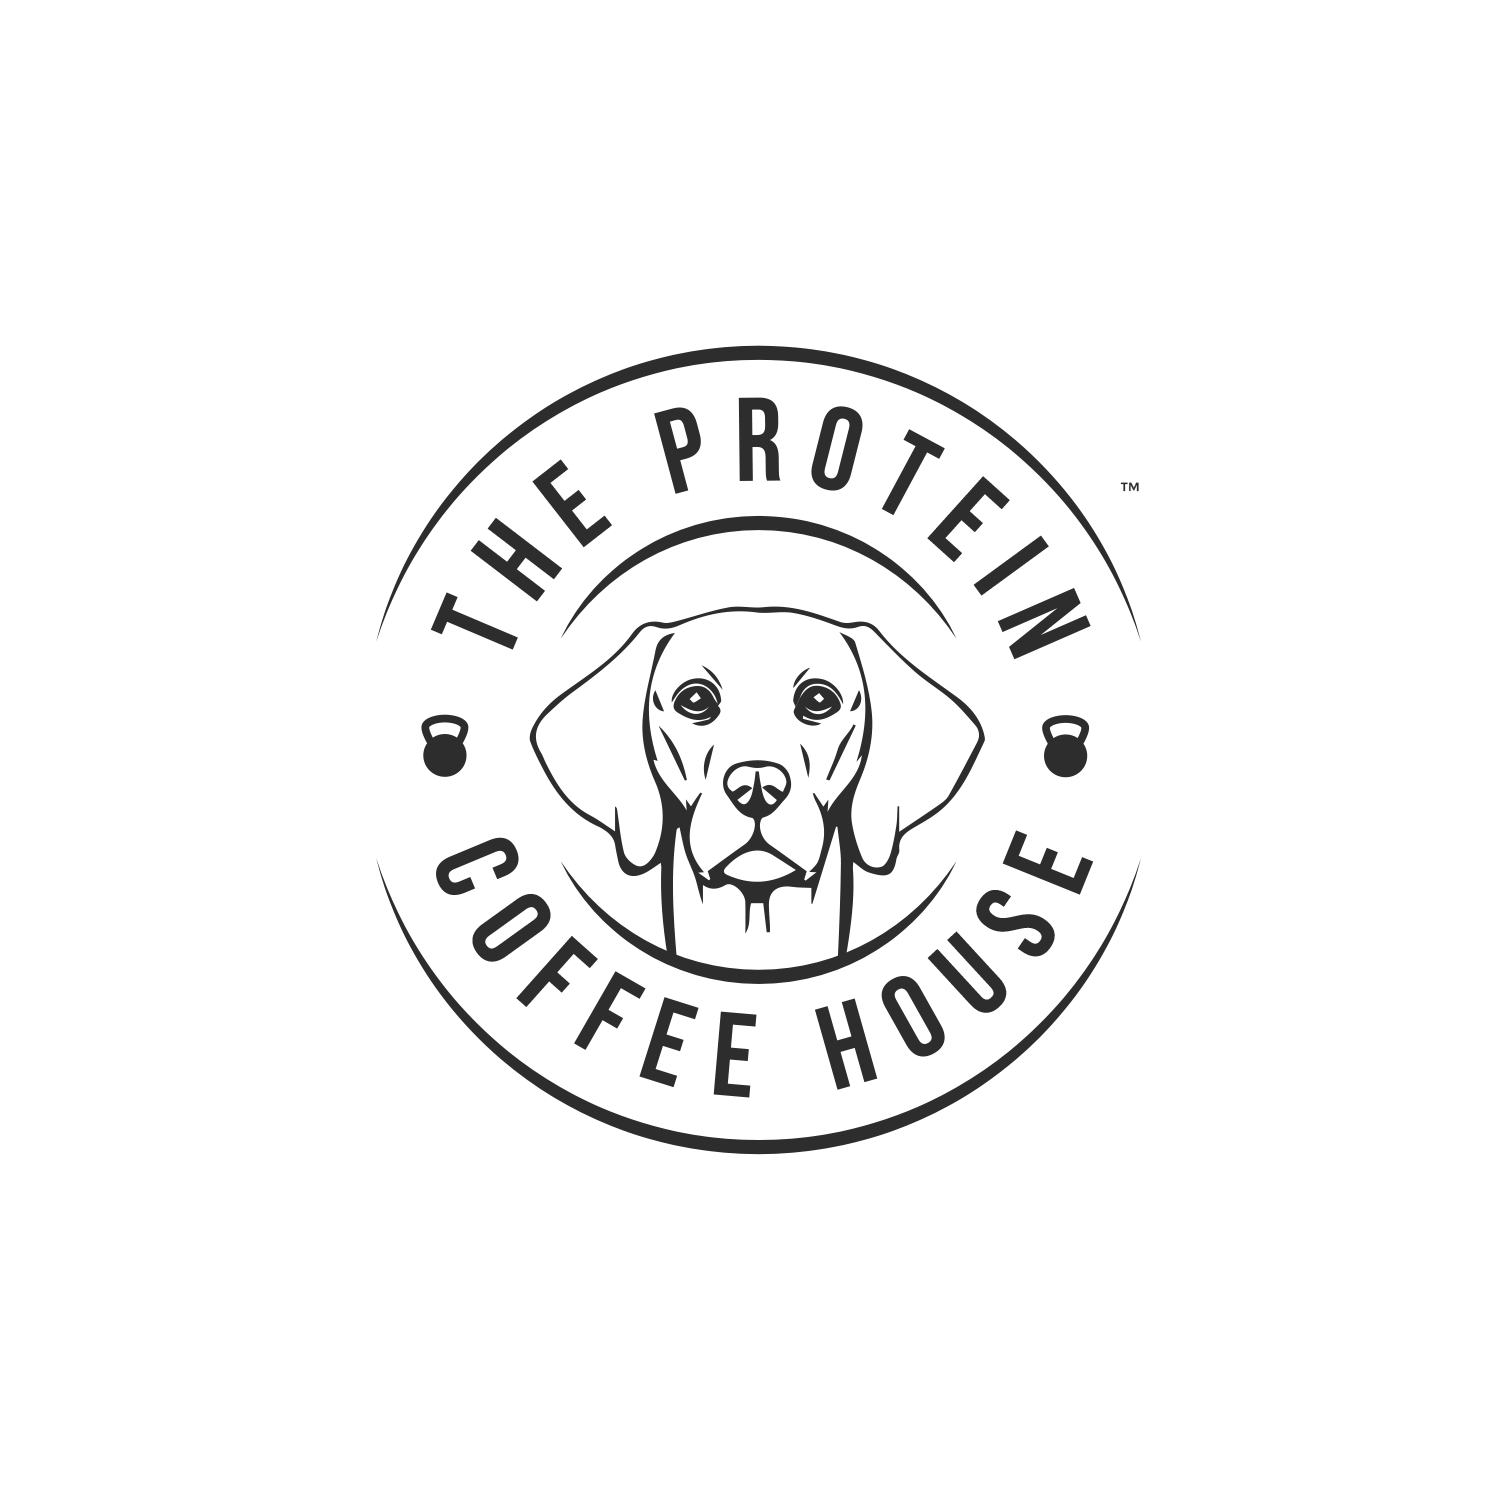 Protein House Logo: The Protein Coffee House